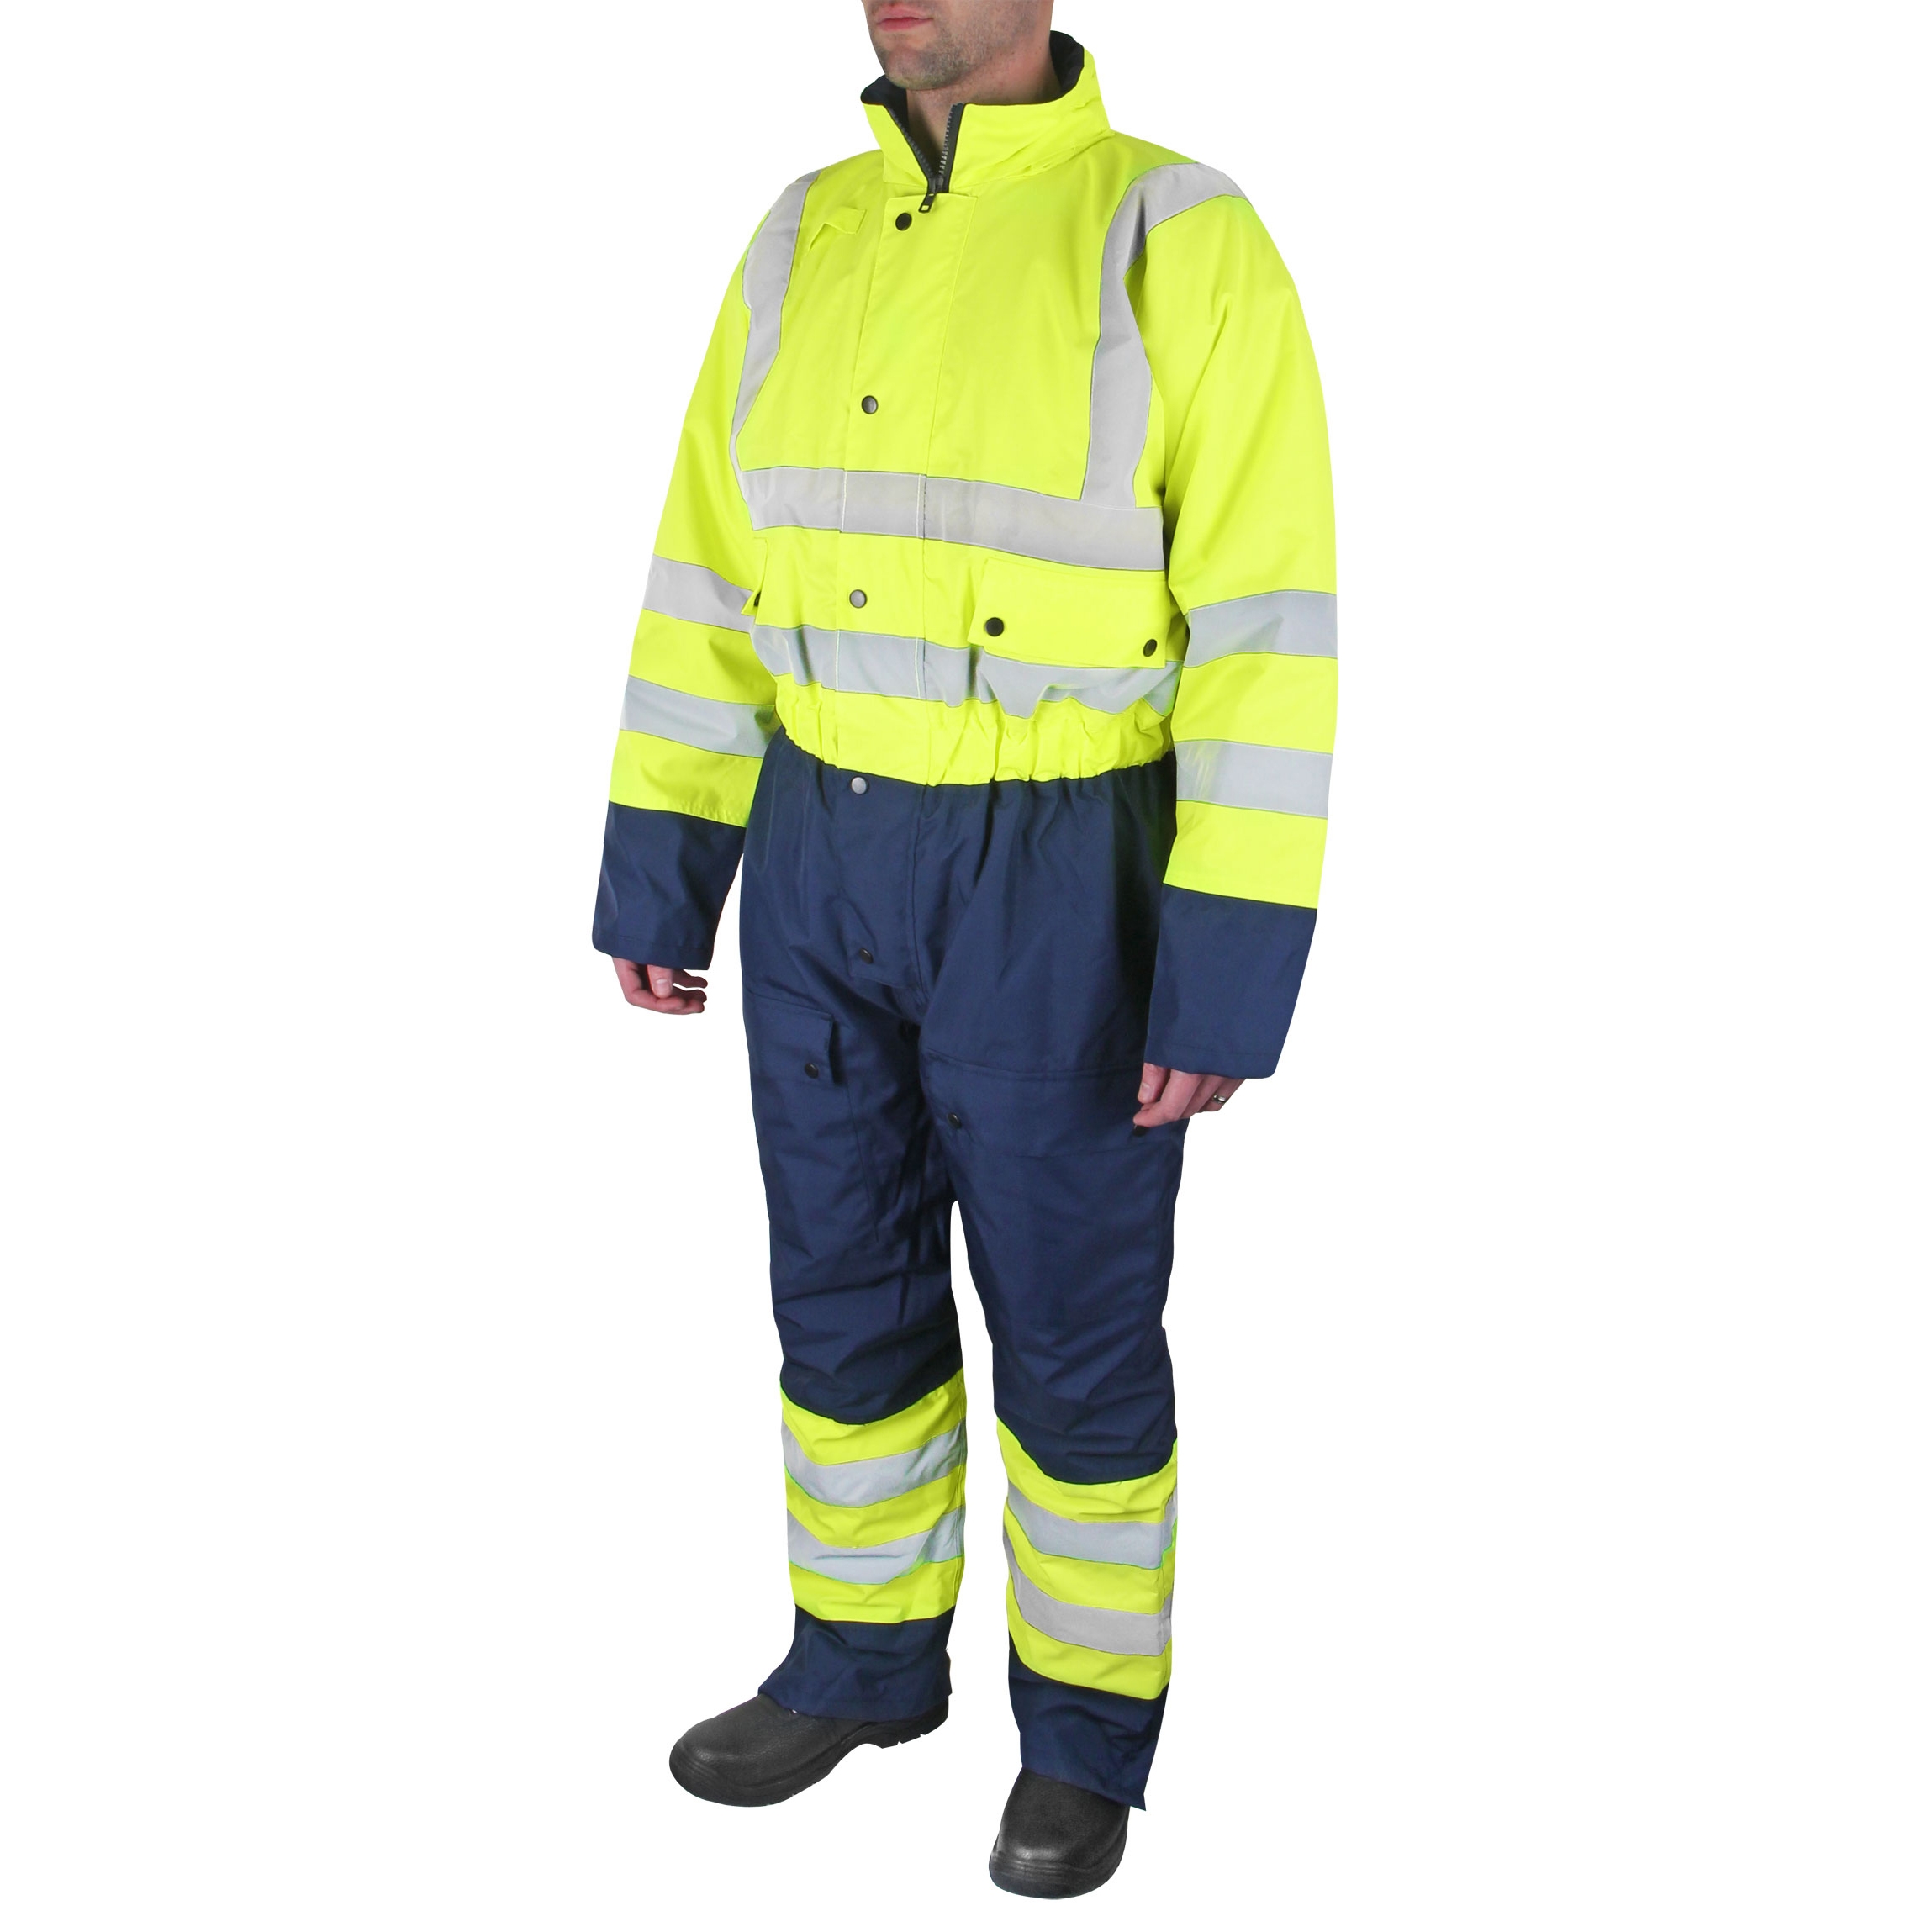 B-Seen Hi-Vis Thermal Waterproof Coveralls XL Yellow/Navy Ref BD900SYNXL *Upto 3 Day Leadtime*